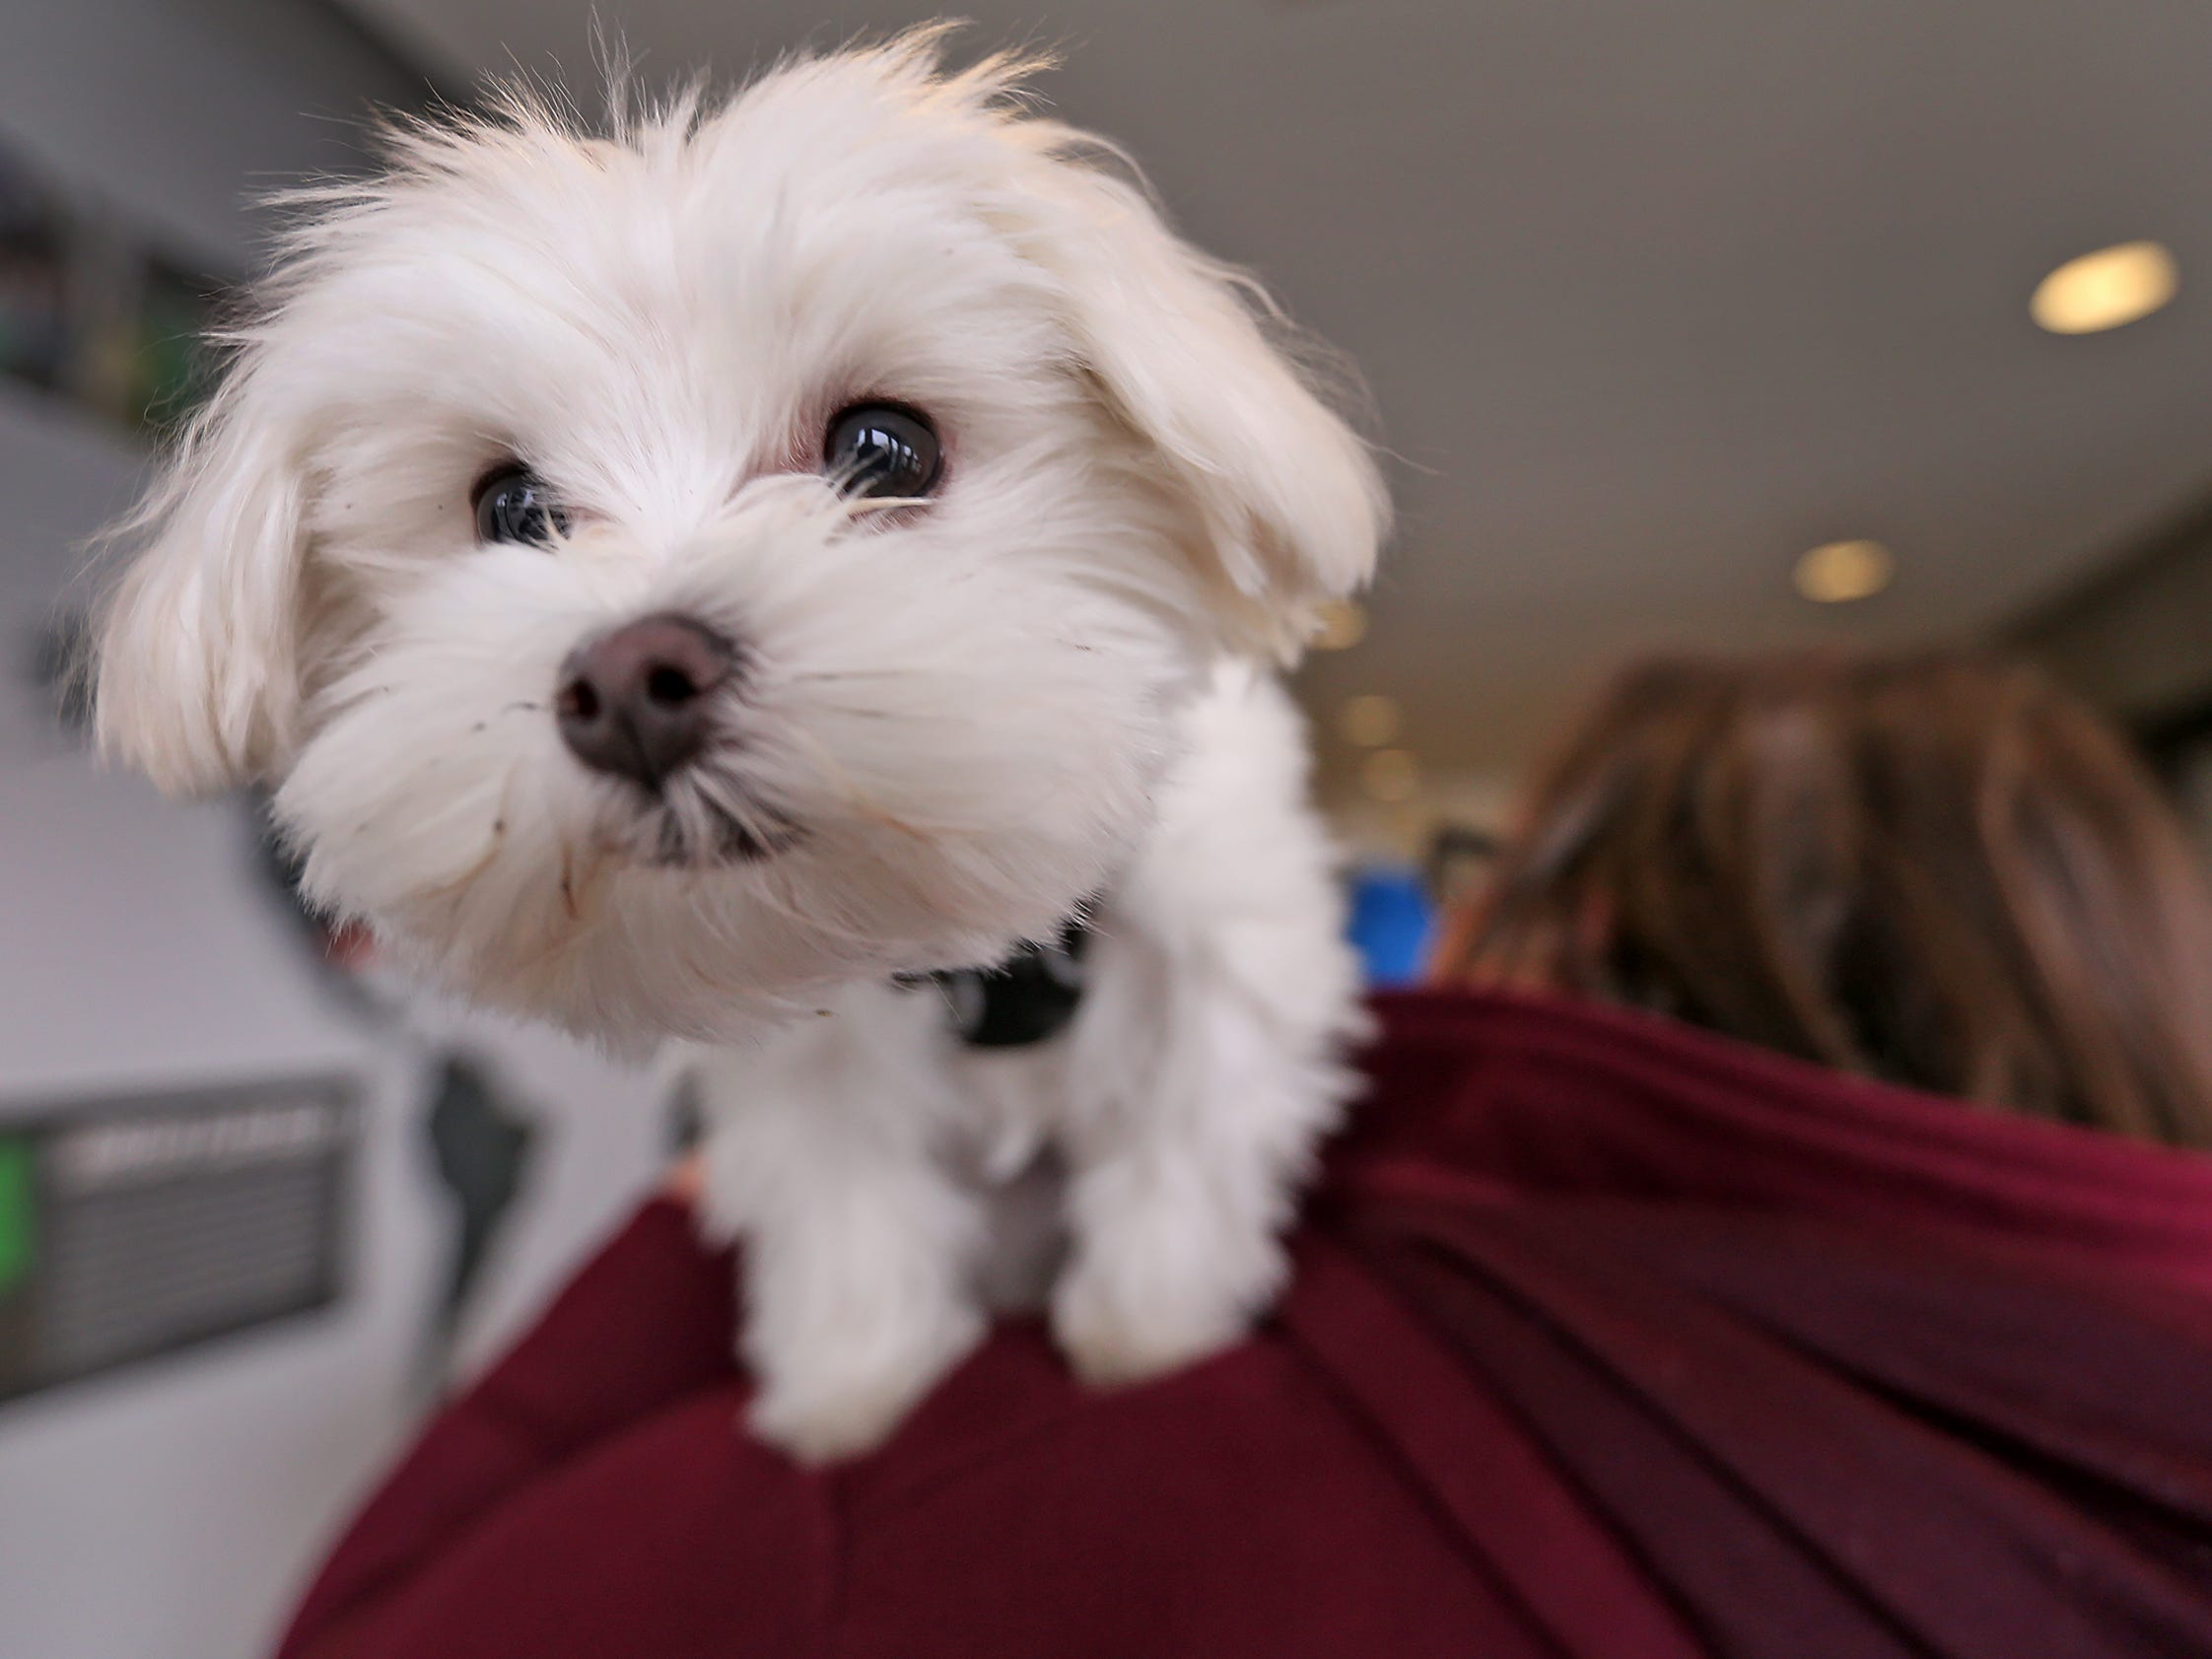 Pistachio, a Maltese-mix puppy, who is the 2019 Puppy Bowl's tiniest player, sits atop his owner Christina Bellardo's shoulder, as he visits the Indianapolis Motor Speedway, Wednesday, Jan. 9, 2019.